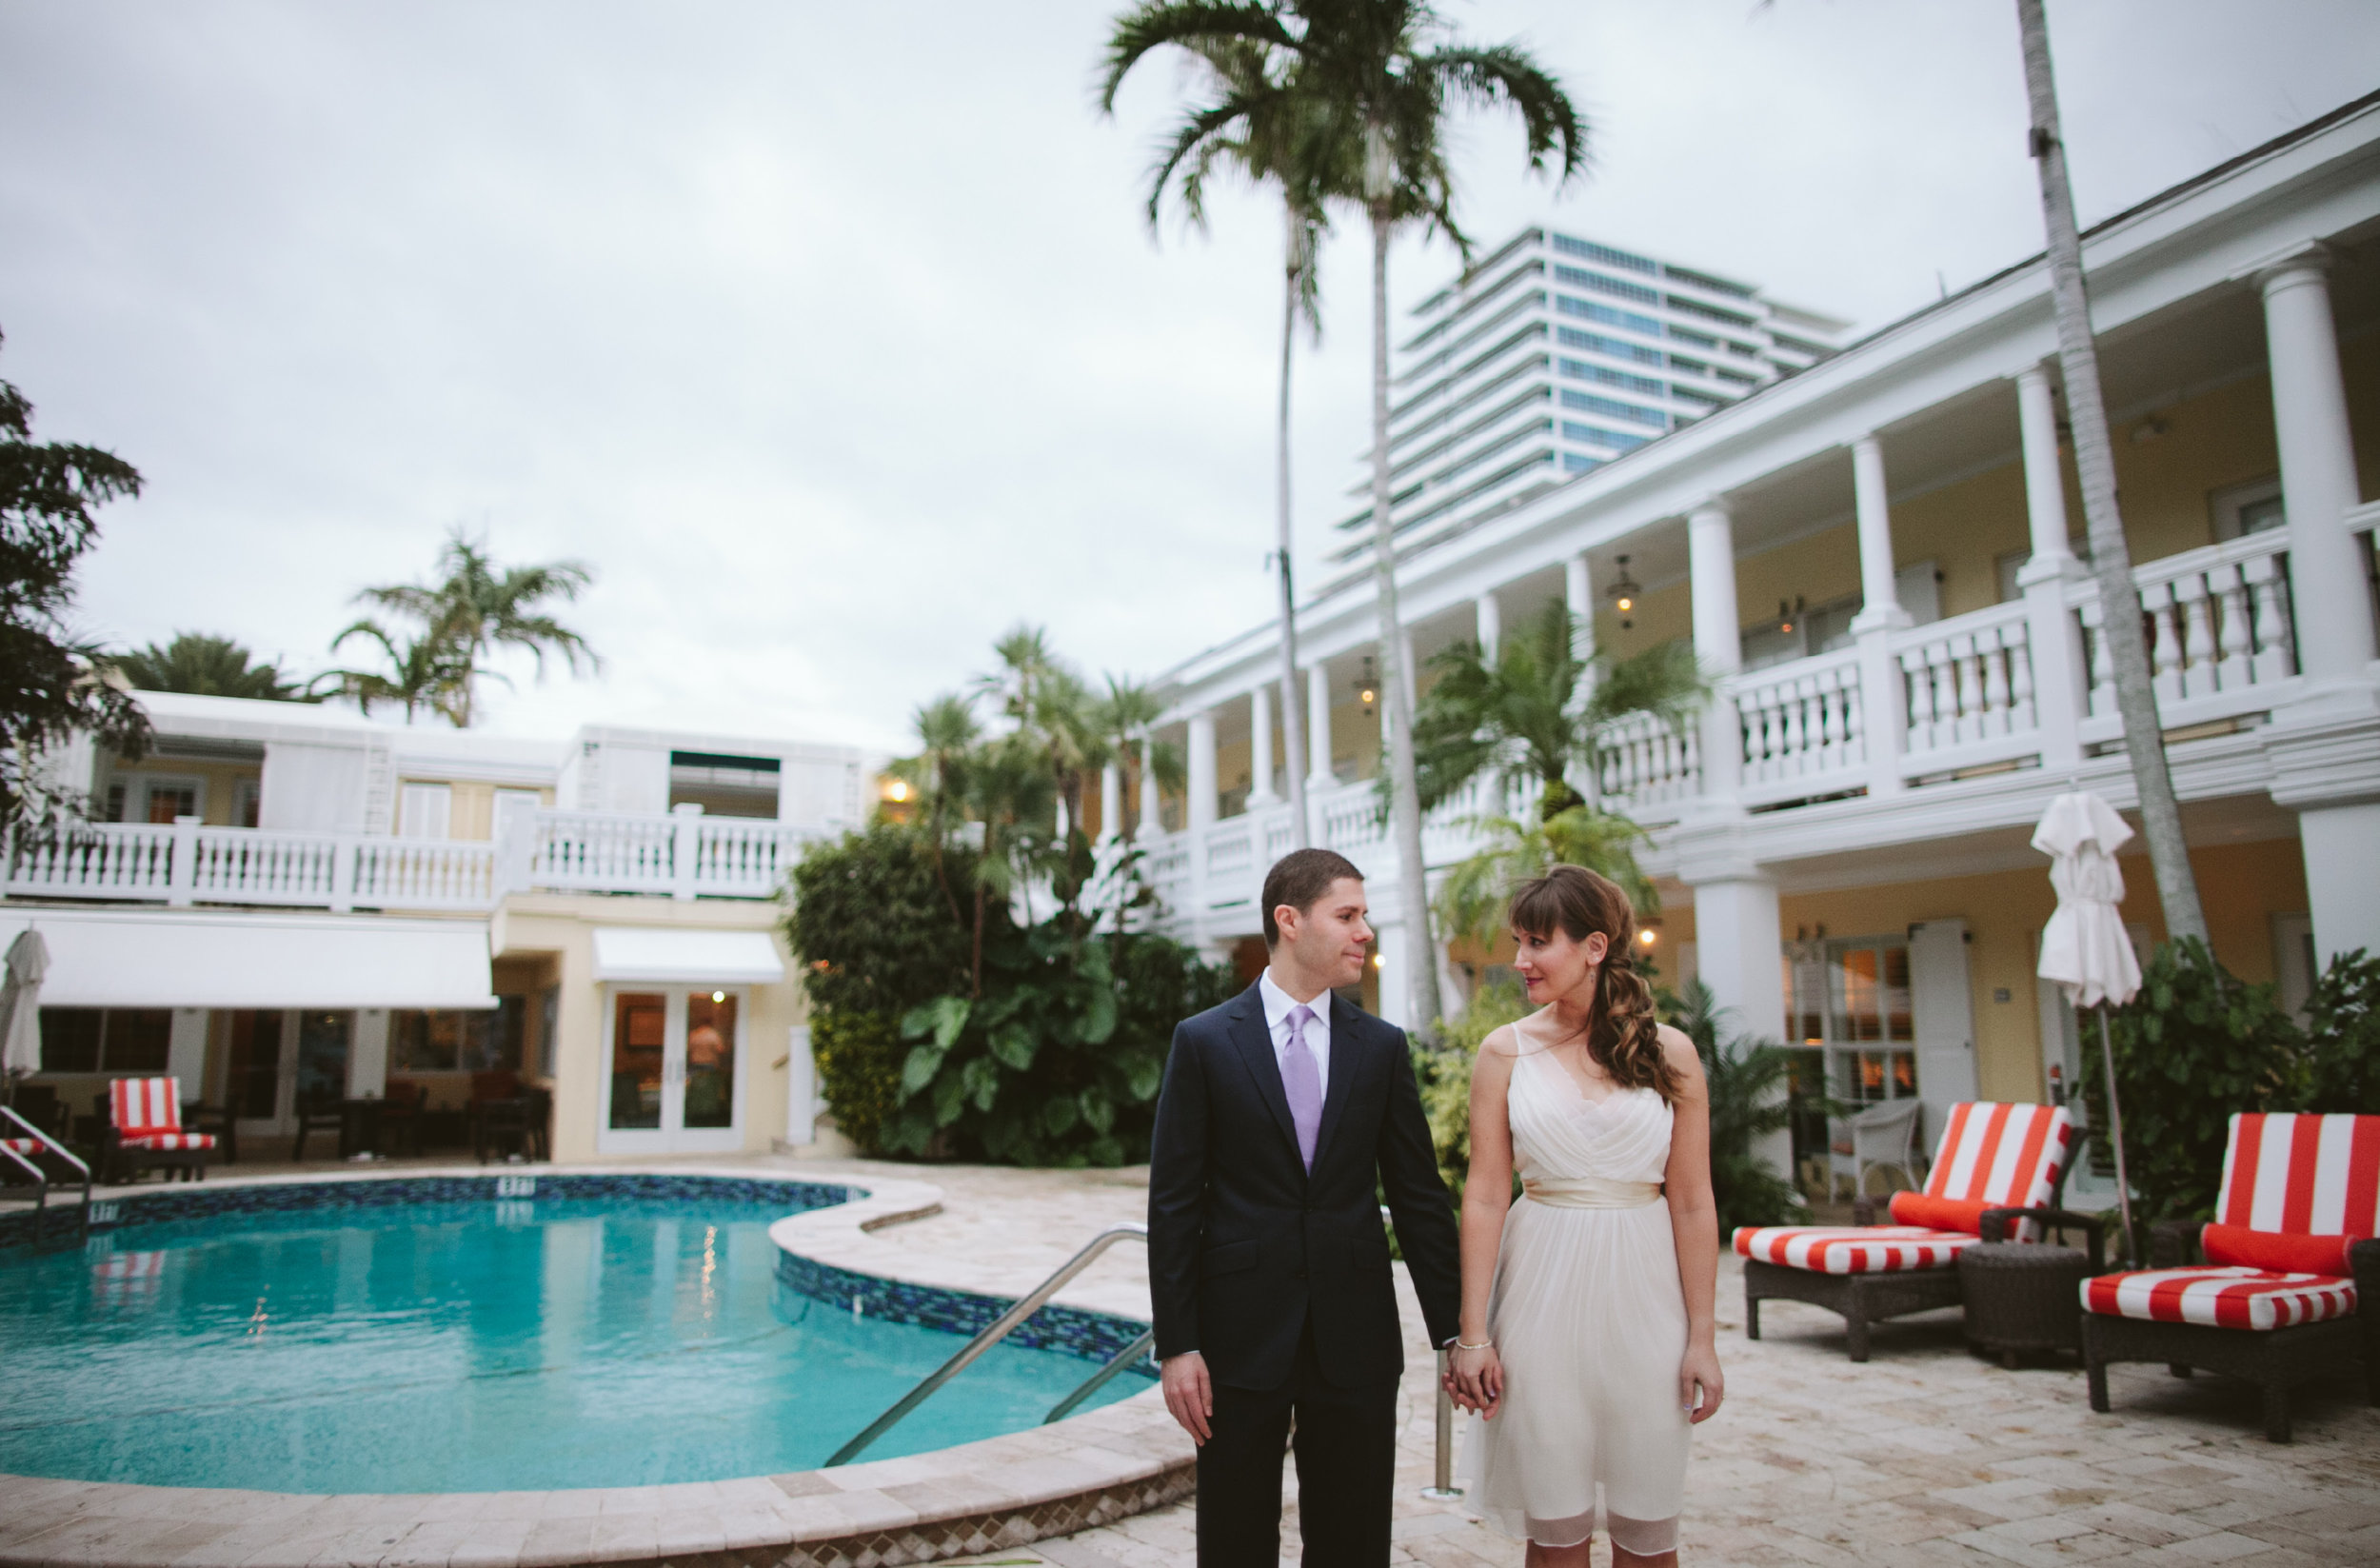 Laura + Vitaly's Intimate Ft Lauderdale Wedding at The Pillars Hotel.jpg